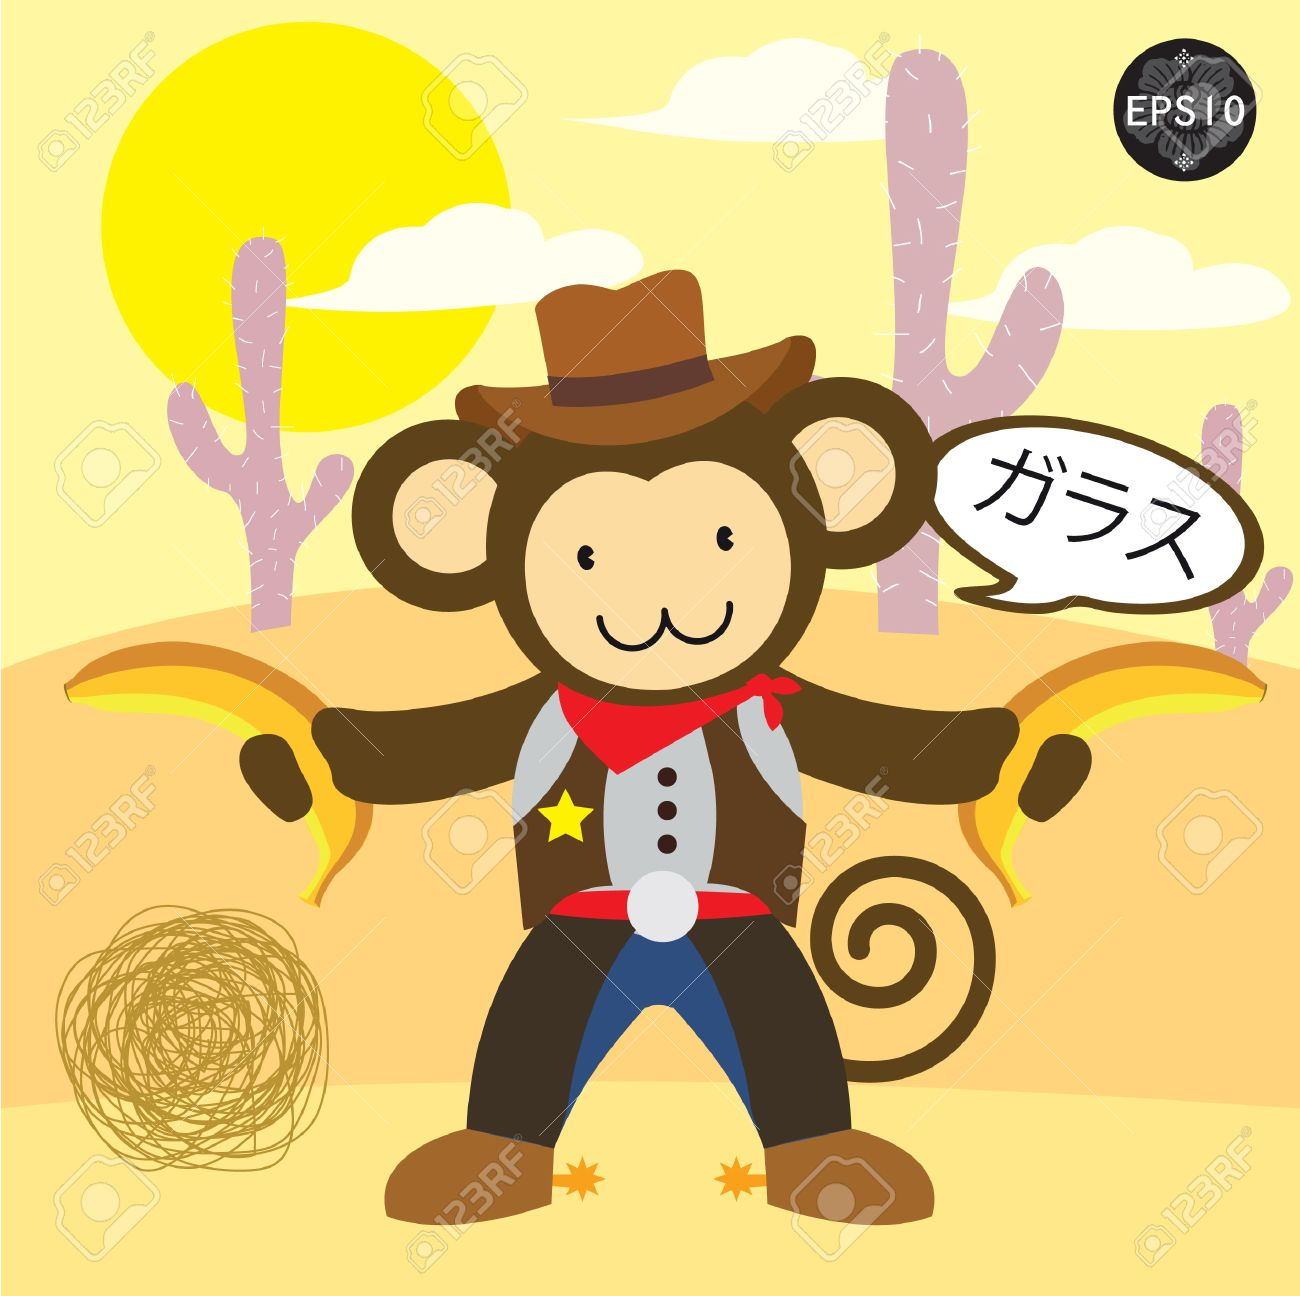 A monkey sheriff drawing bananas pistol and say delicious in japan, Vector Stock Vector - 17399768